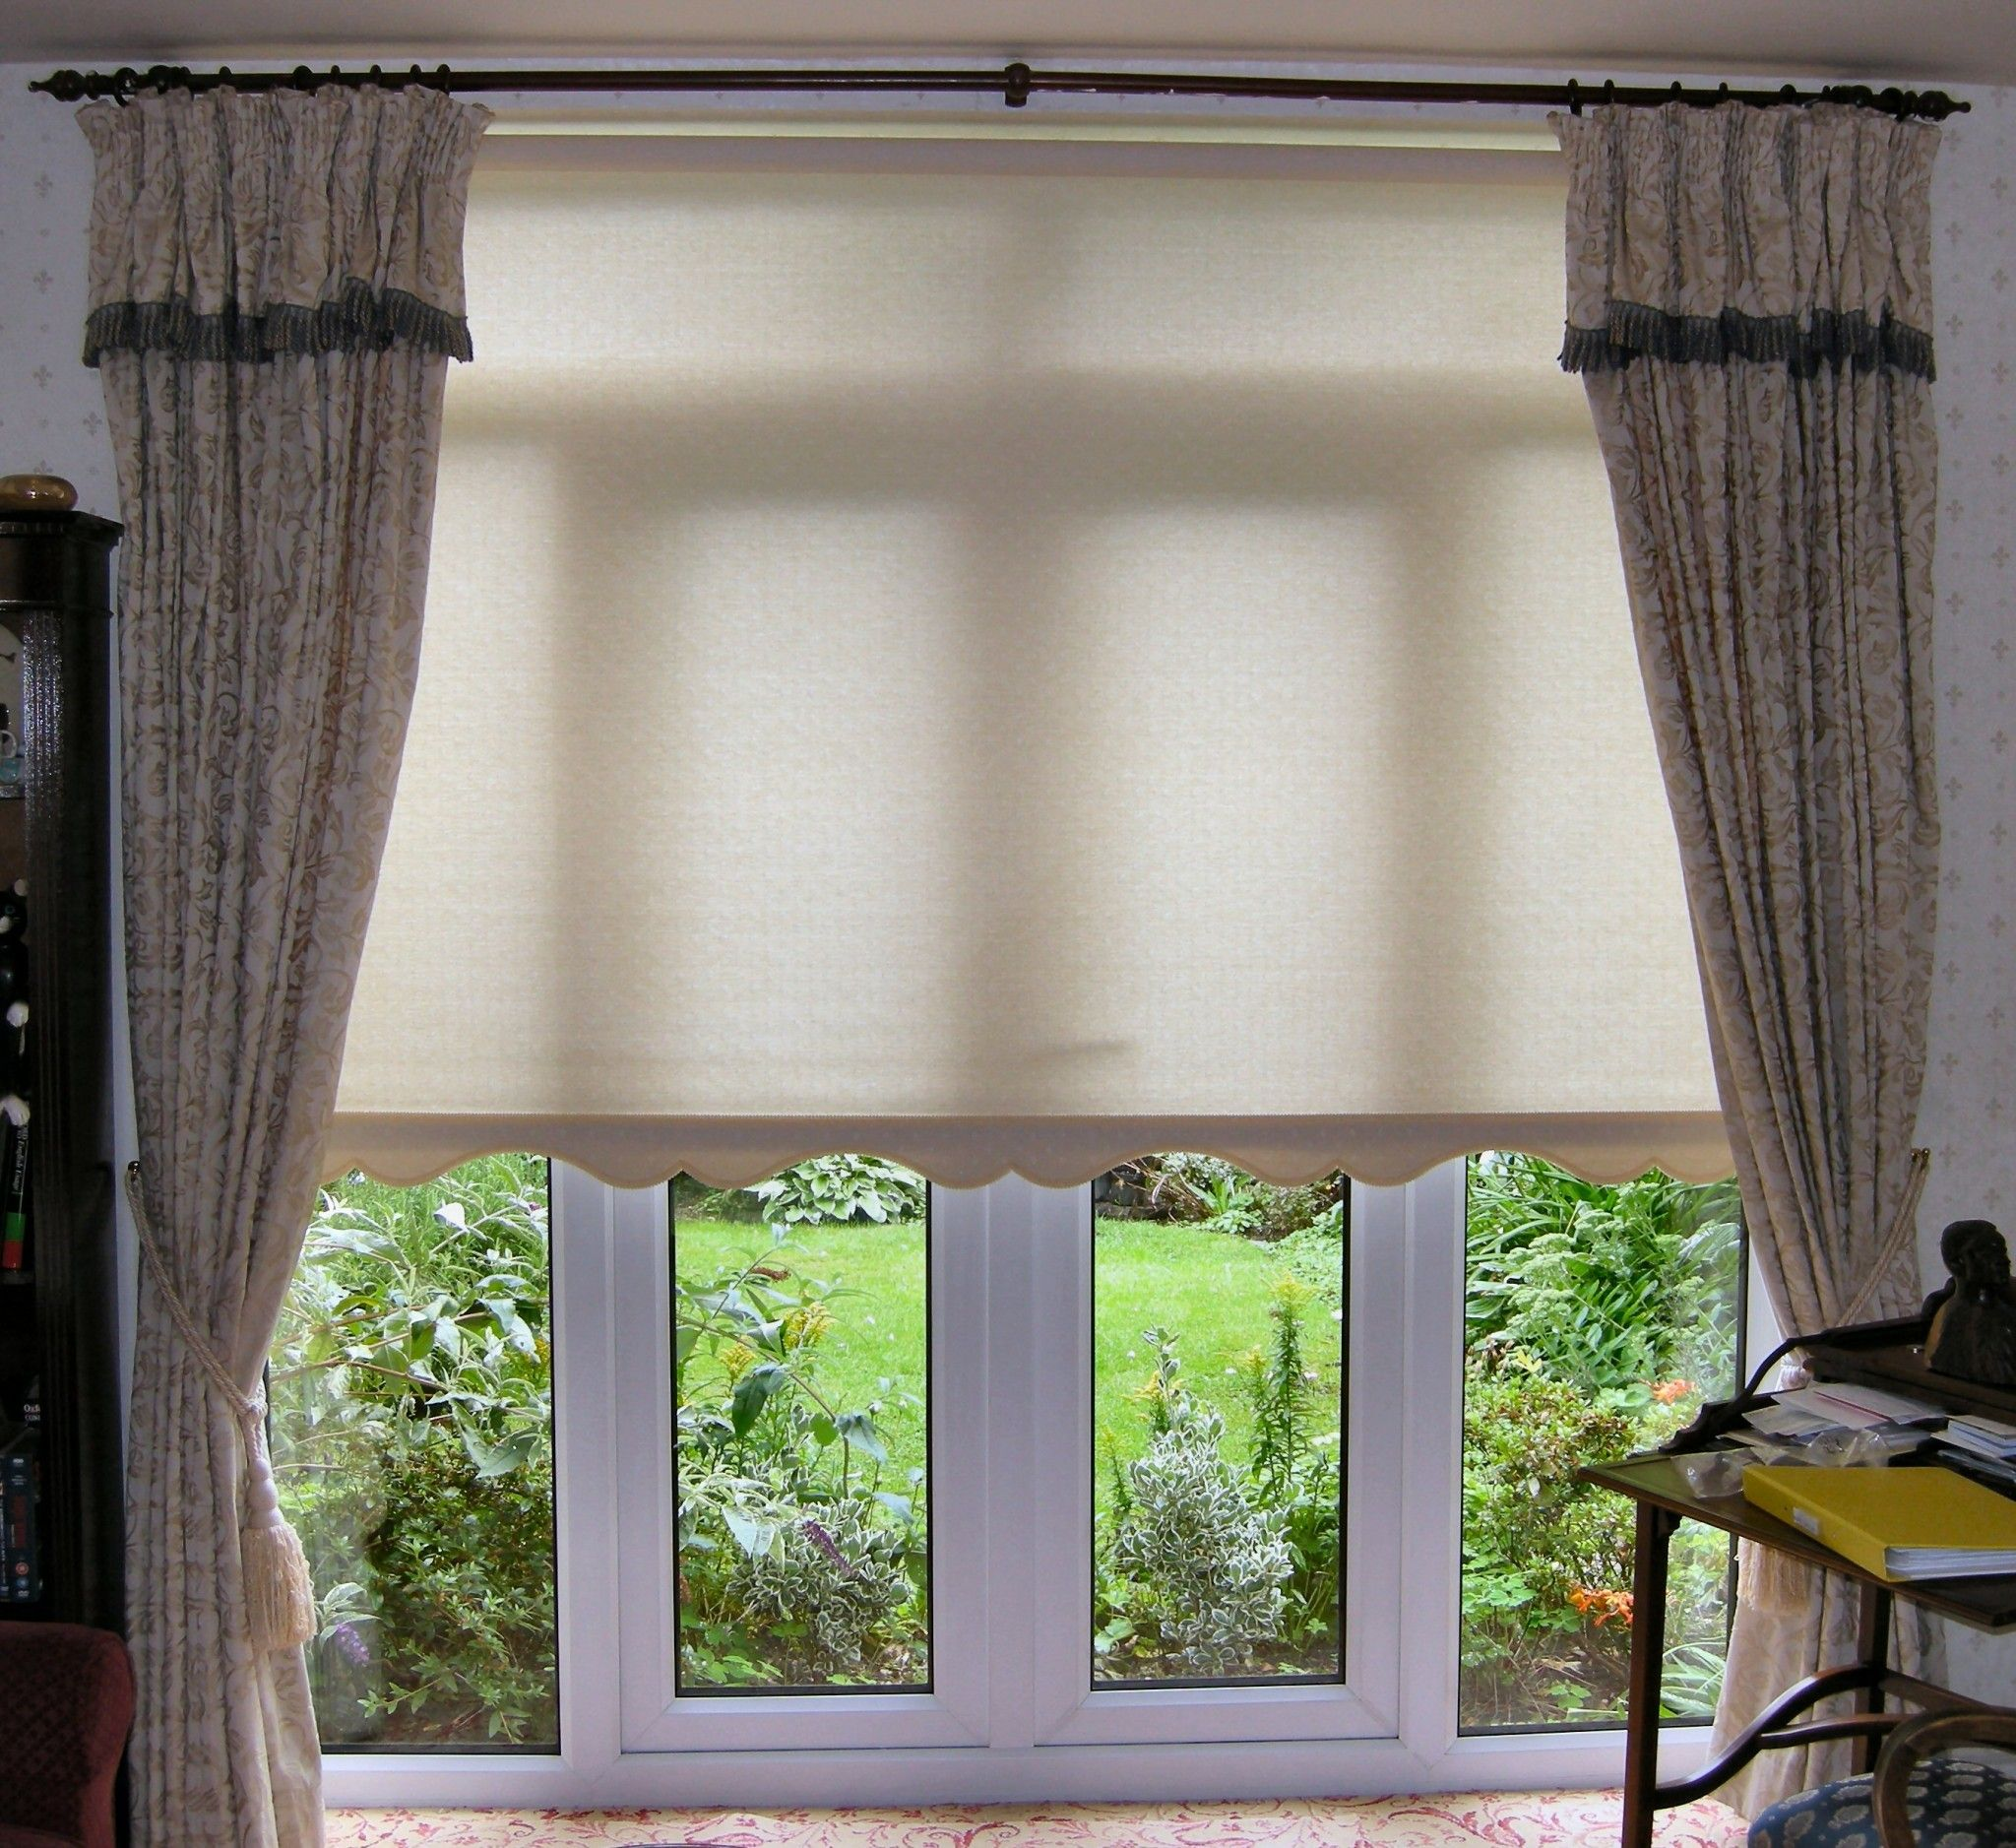 Interior White Shades for Patio Doors Decor With Tie Back Curtain